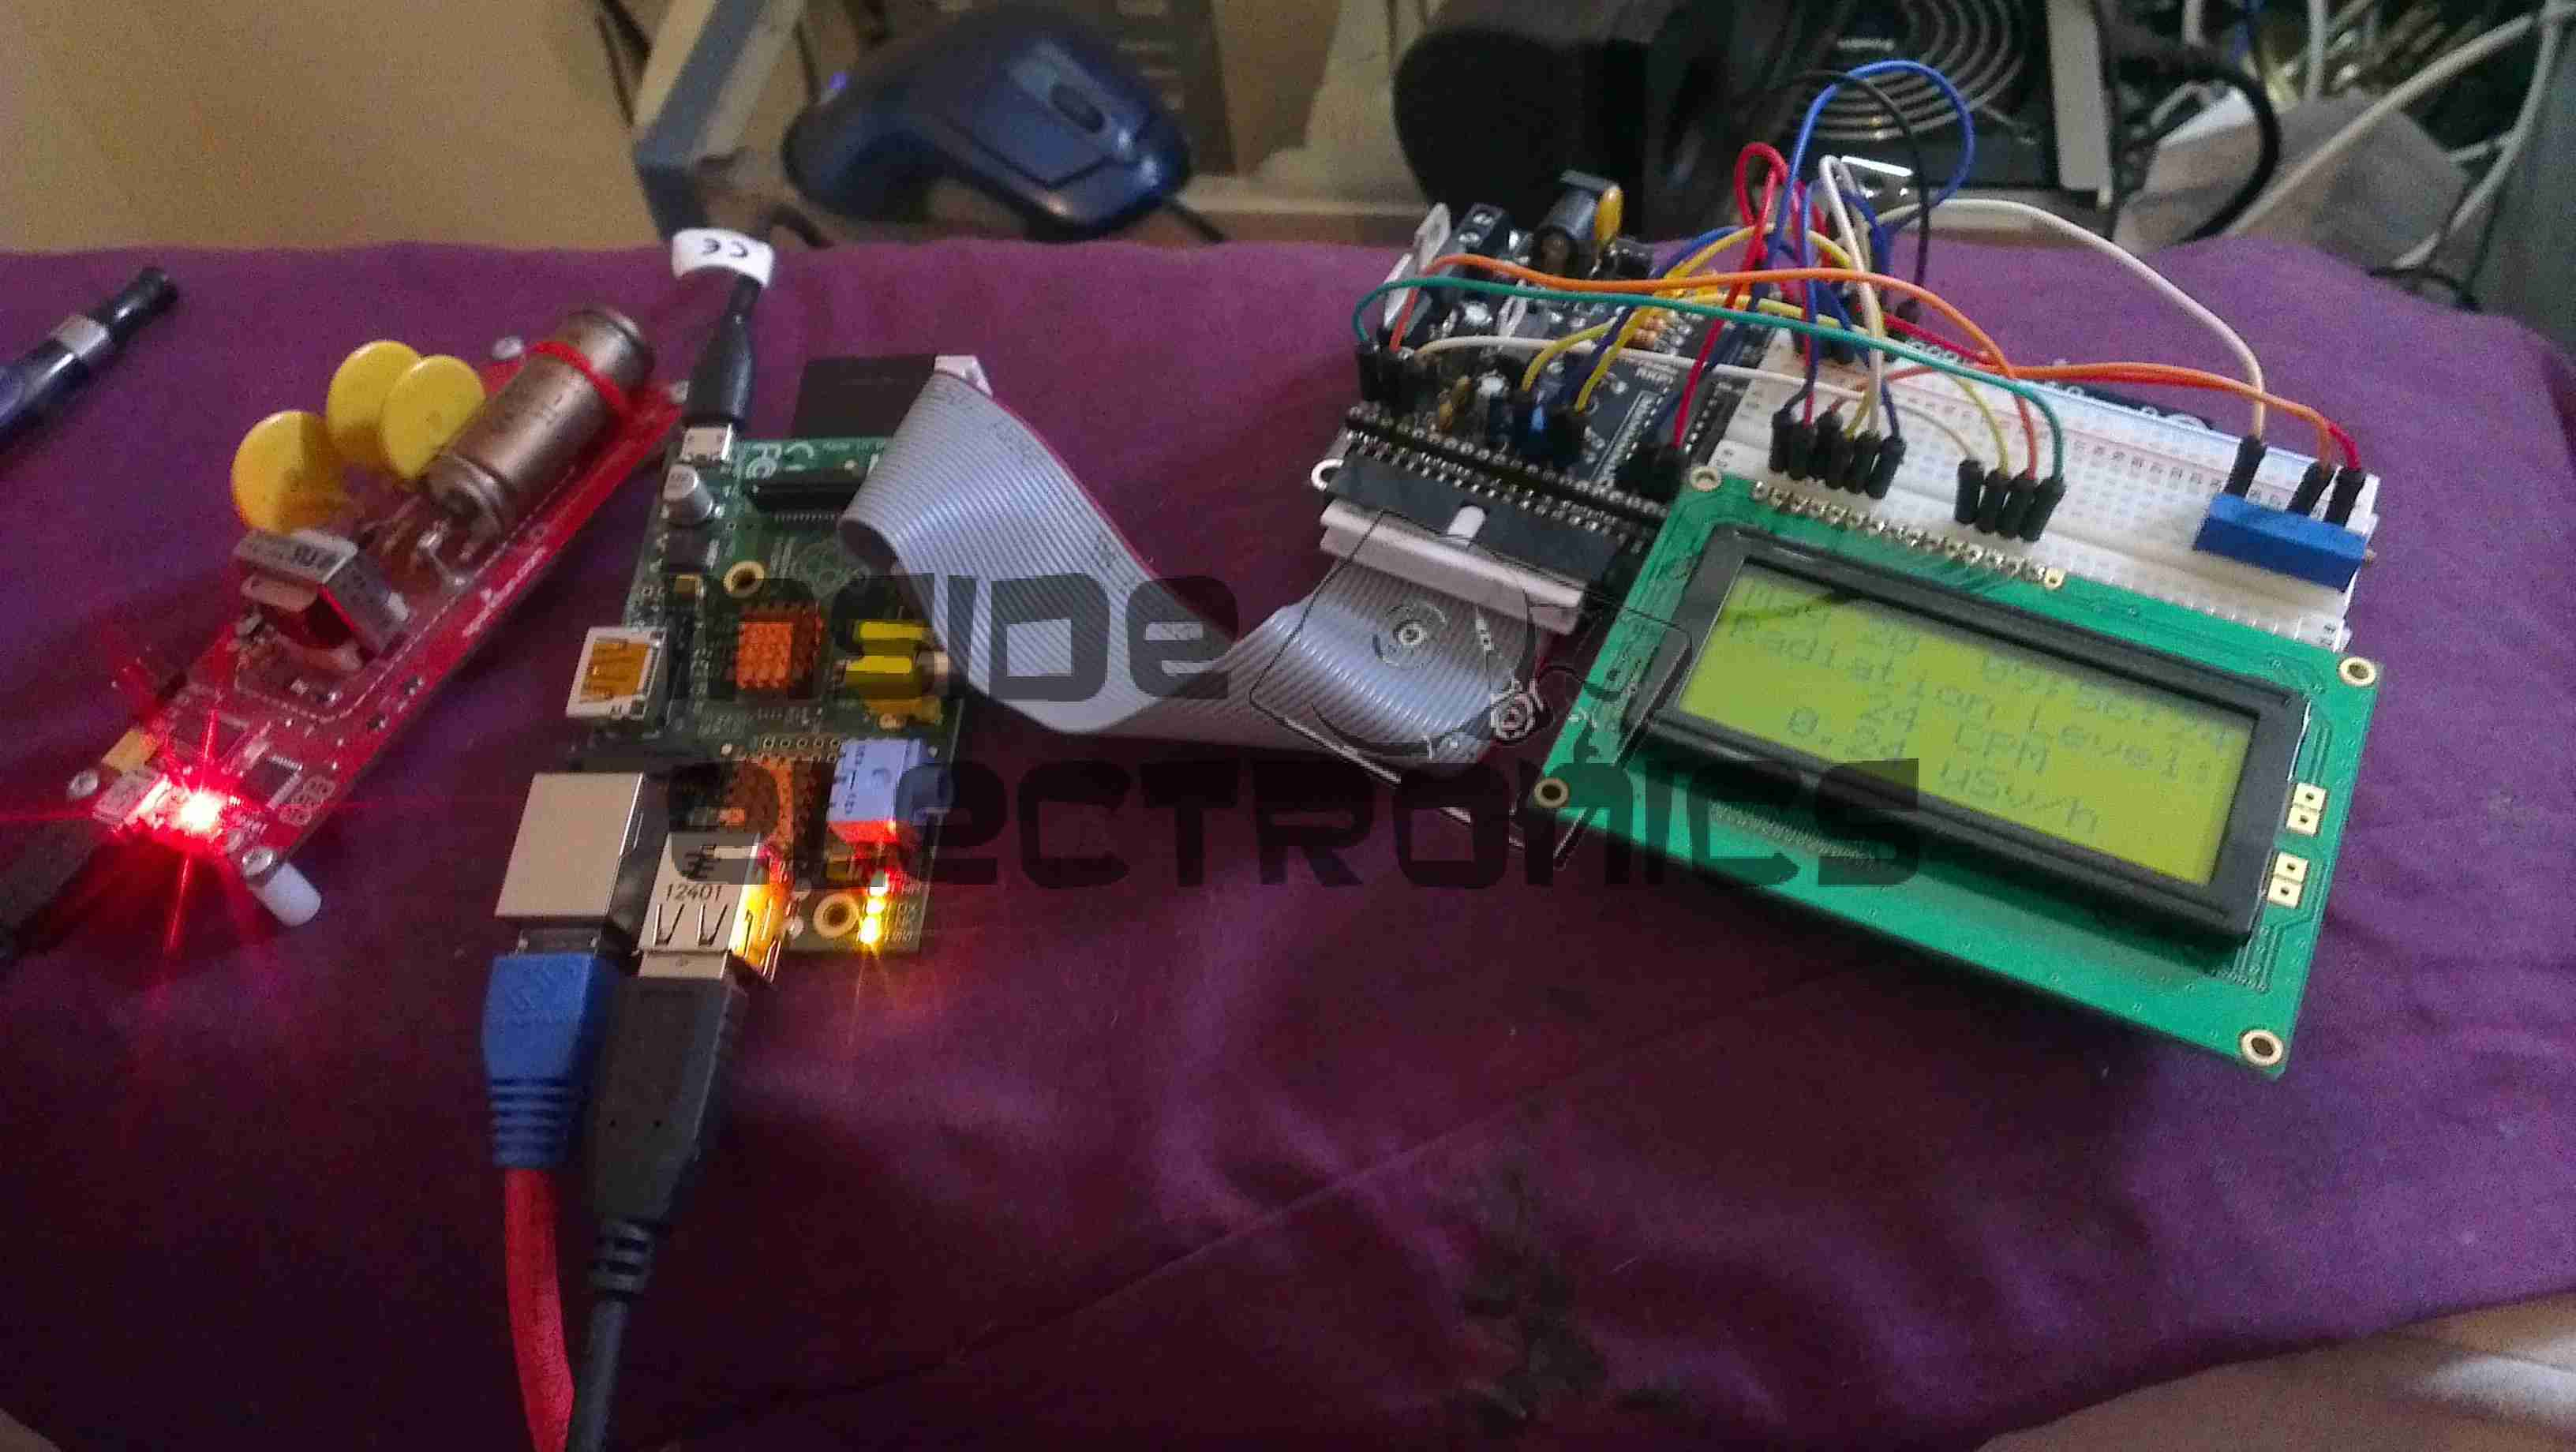 Character Lcd Archives Experimental Engineering Details About Printed Circuit Board Pcb Diy Arduino Geiger Counter Setup